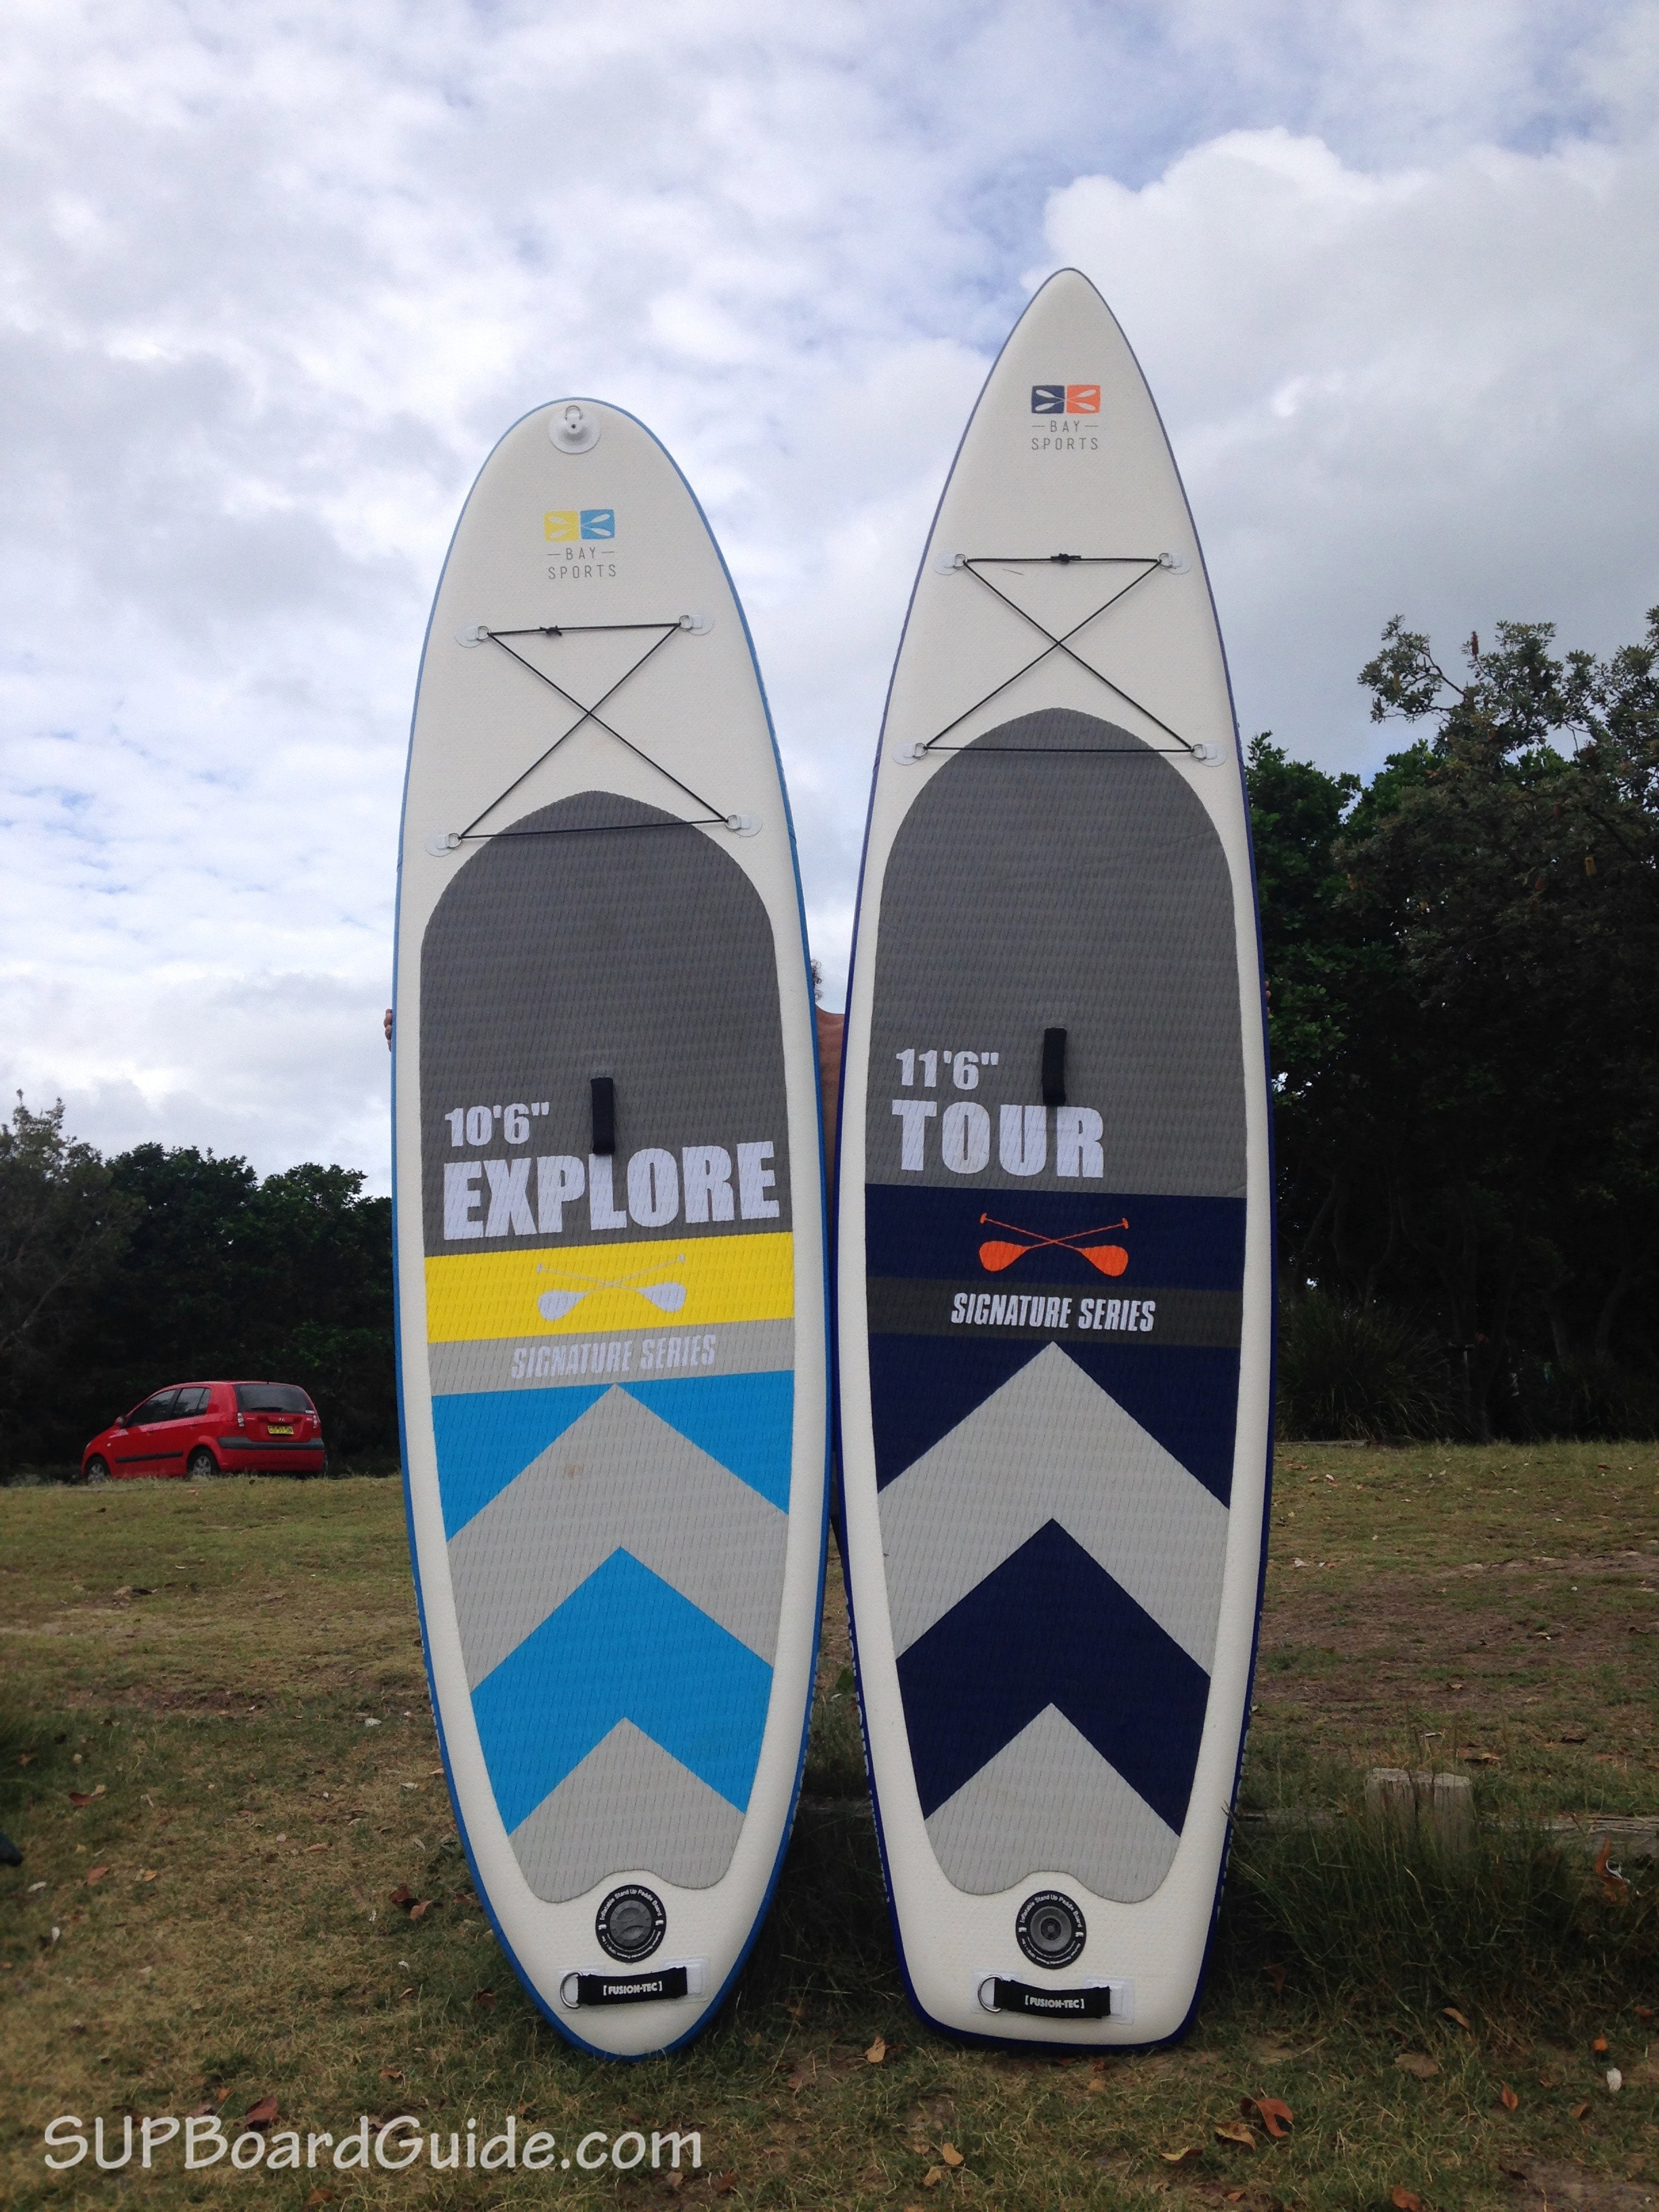 Tour and Explore Board